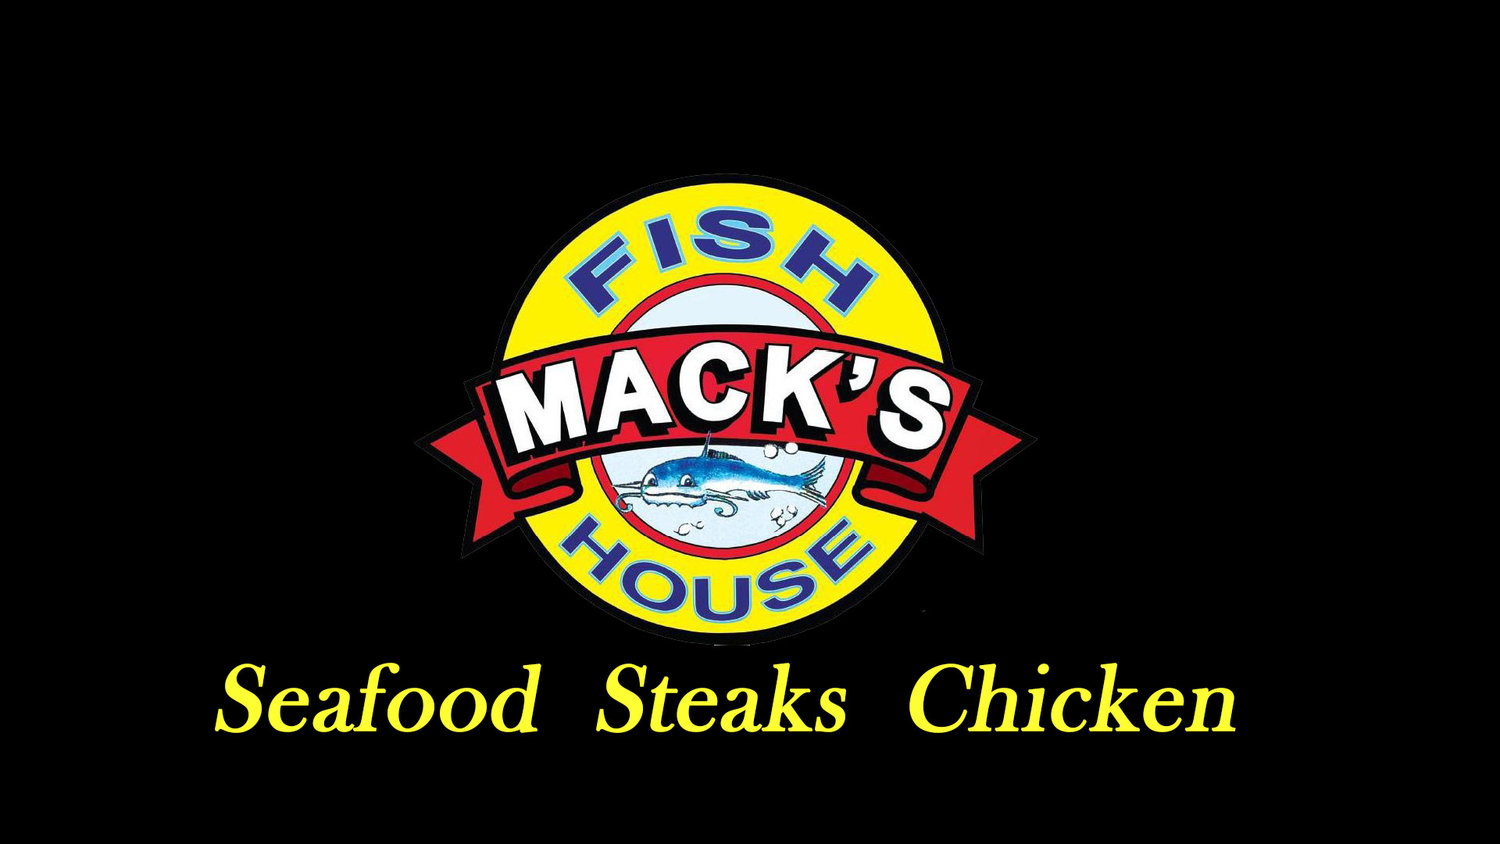 Mack's Fish House